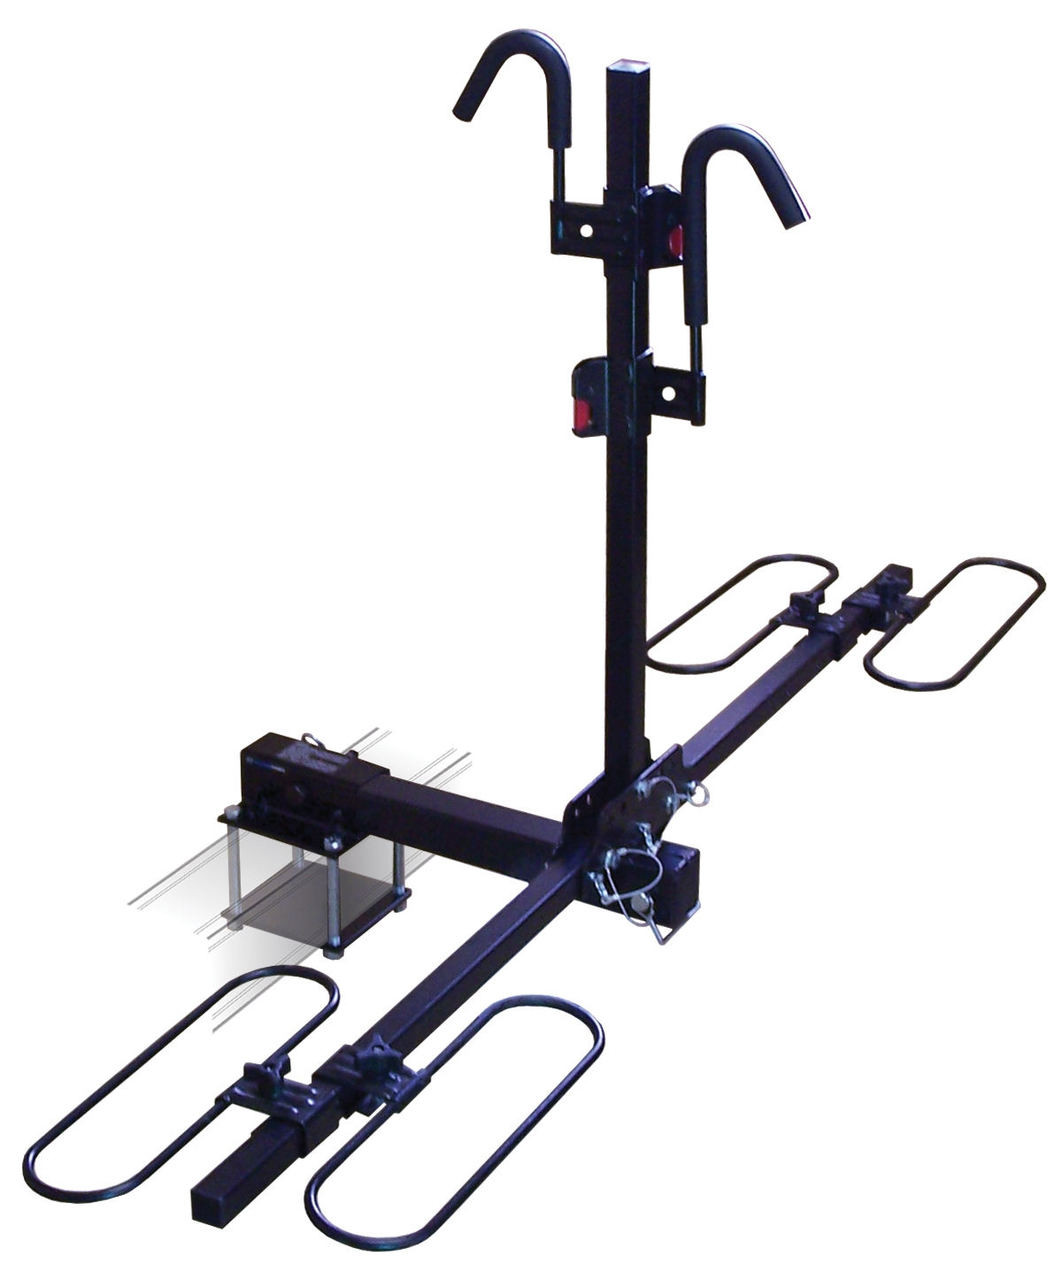 Swagman RV Approved Escapee Hitch Bike Rack